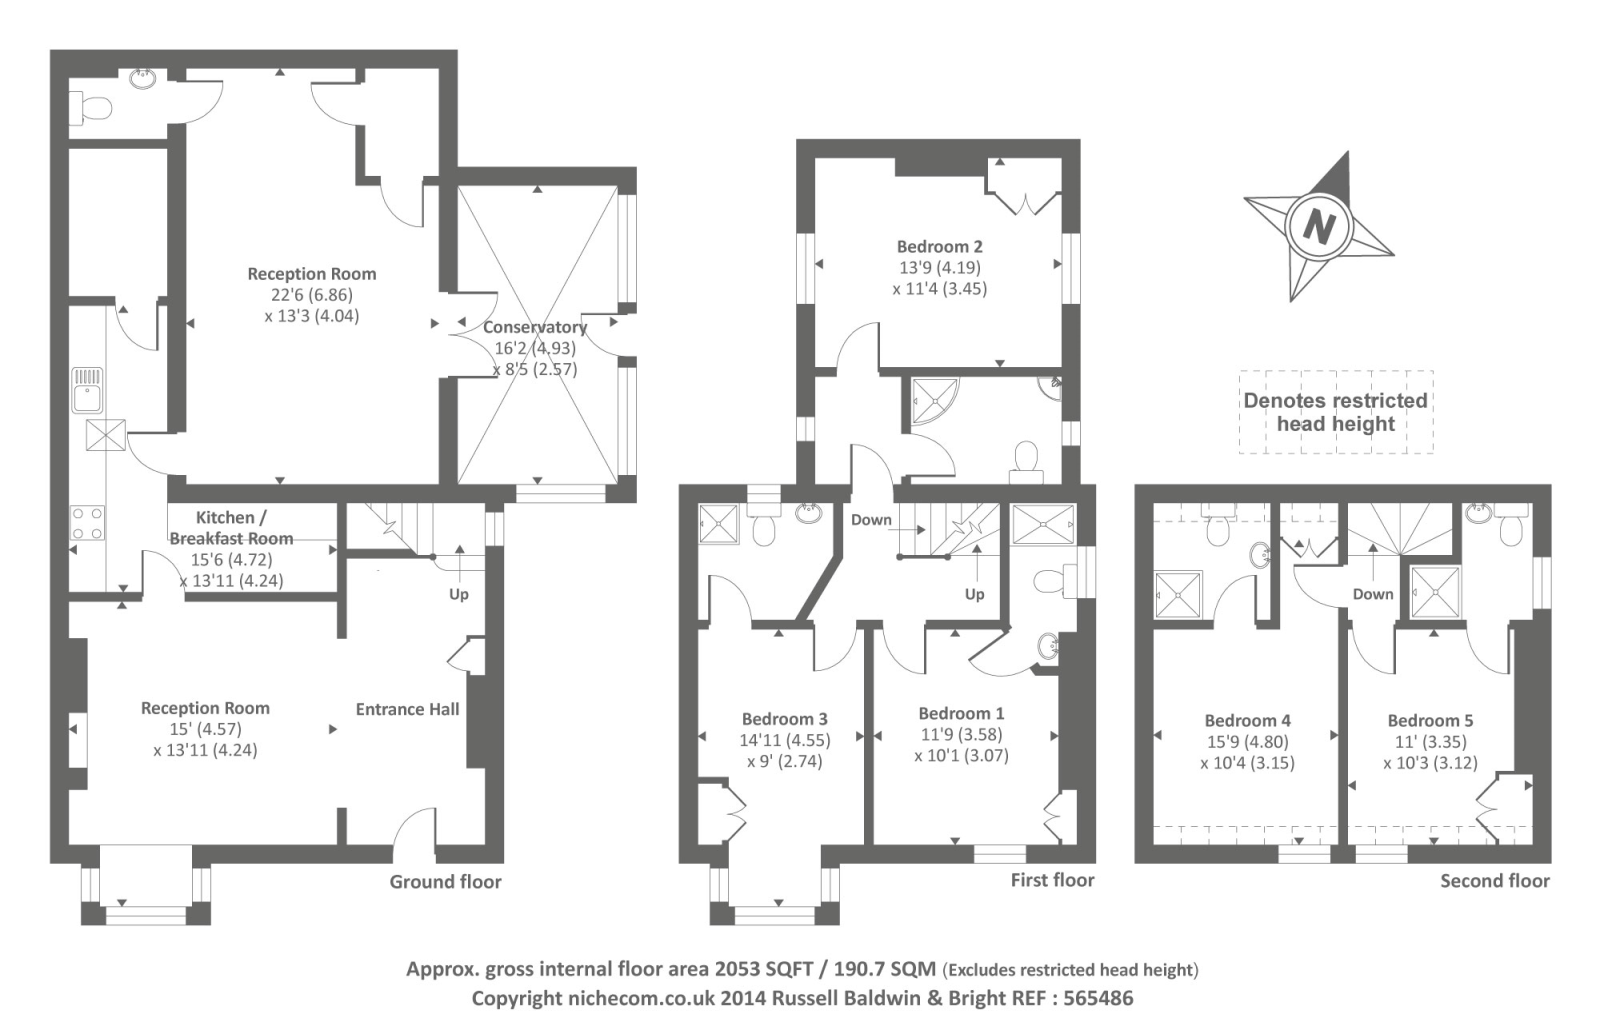 5 bed house for sale in hay on wye character townhouse in for House plan books for sale